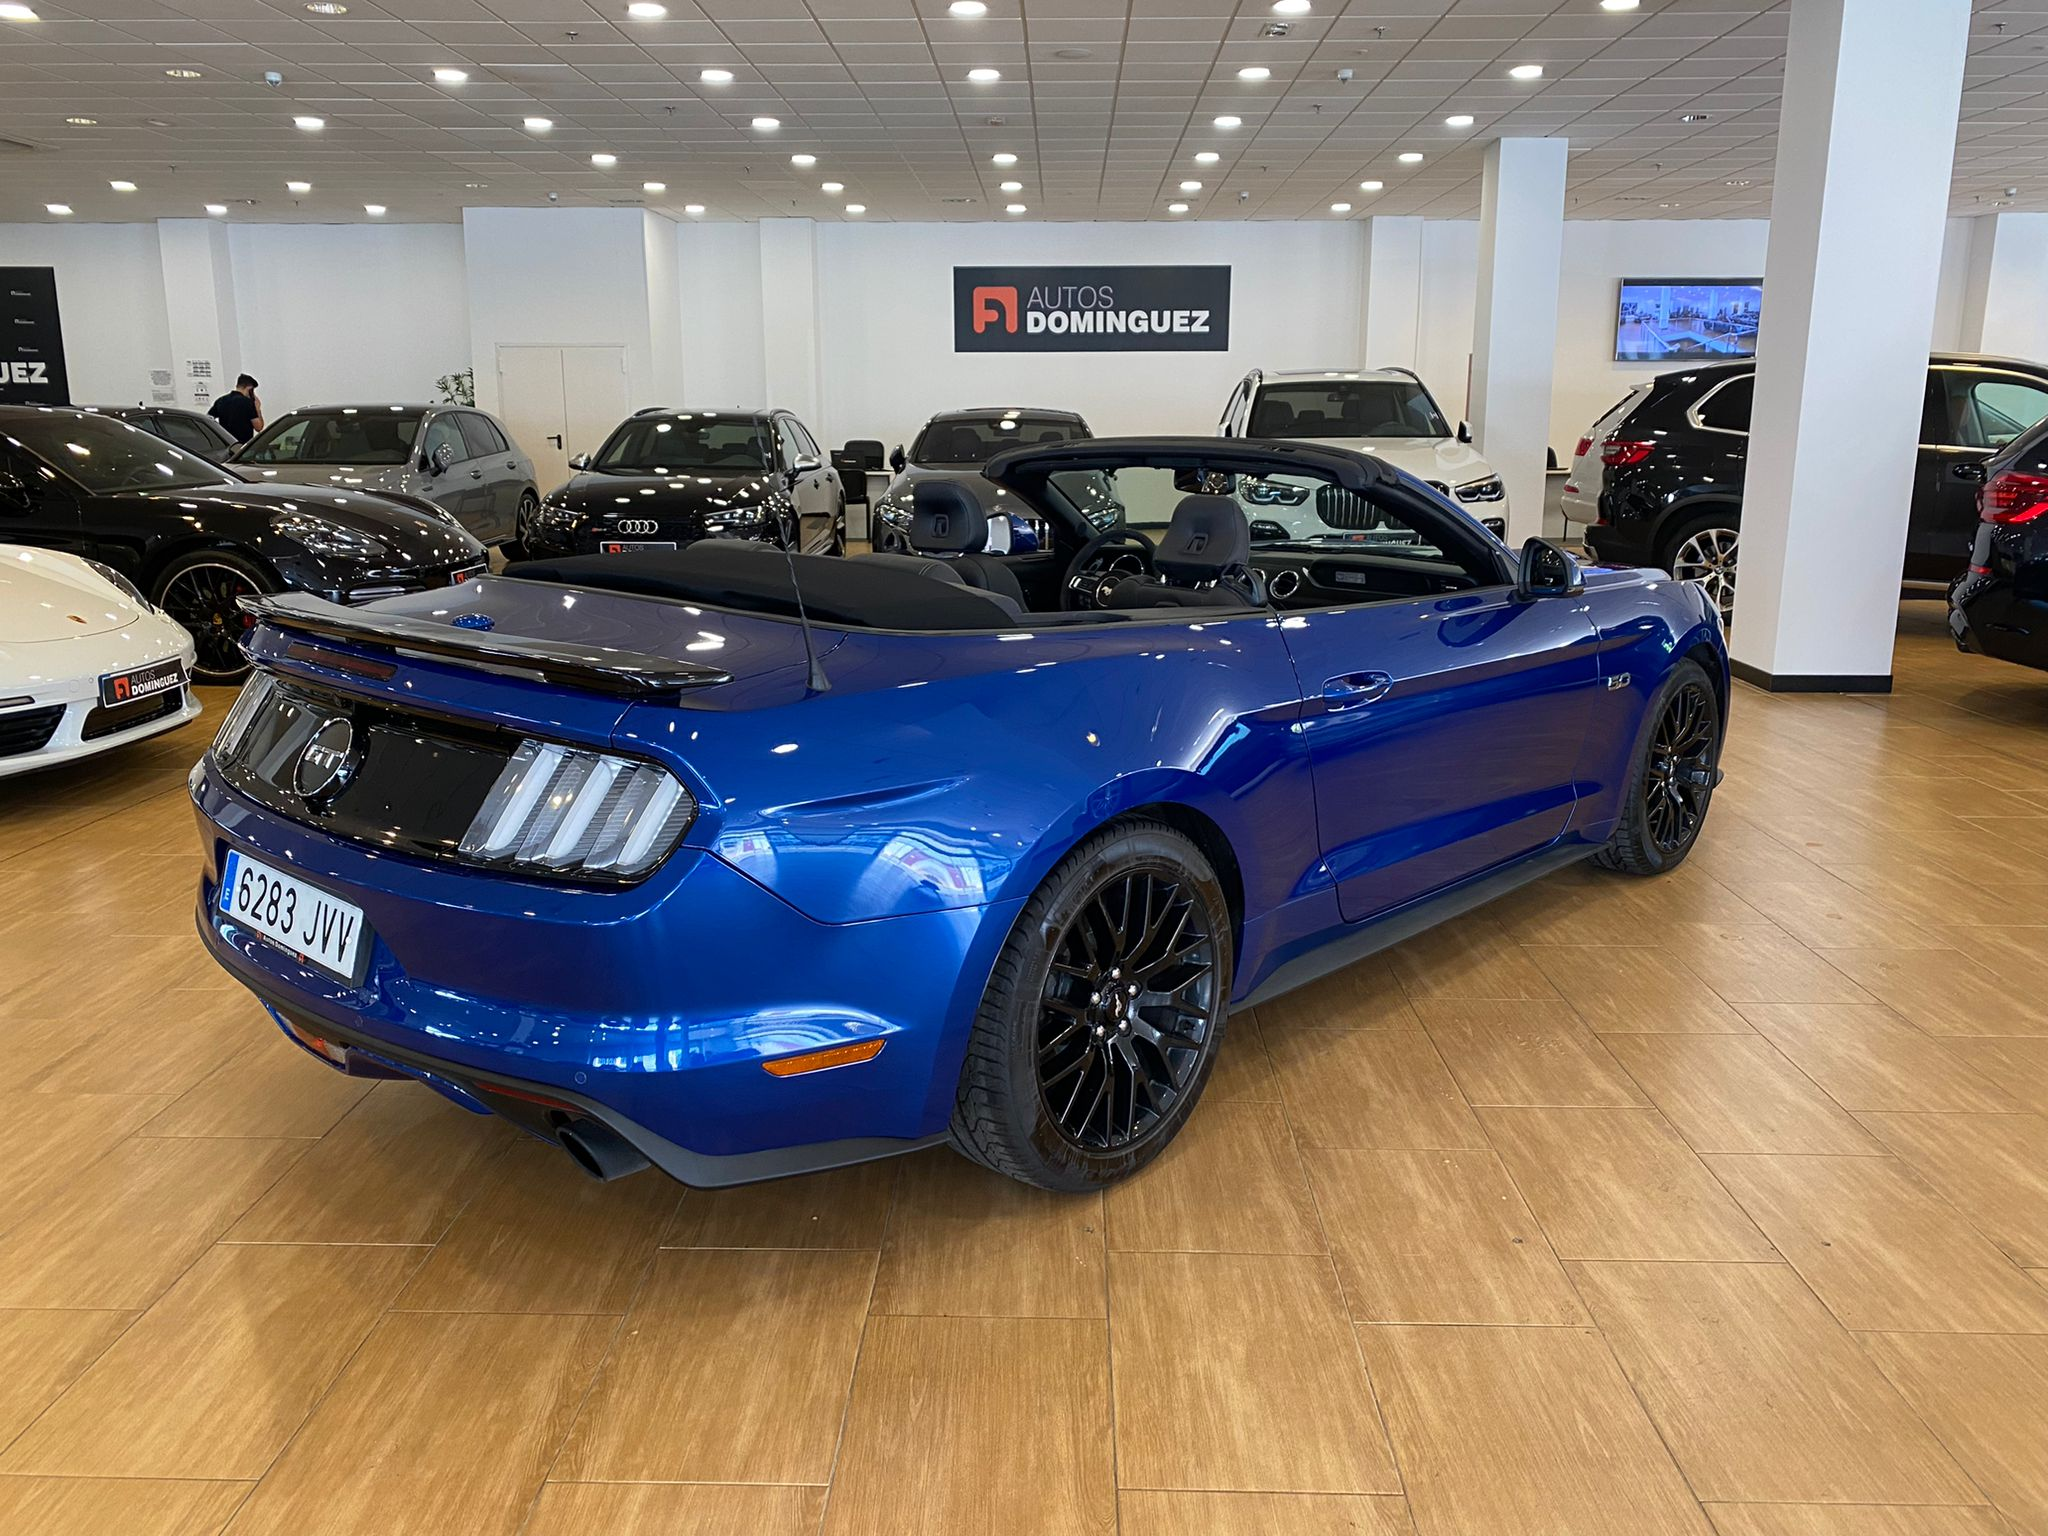 FORD Mustang 5.0 TiVCT V8 307kW Mustang GT Conv. 2p. 7